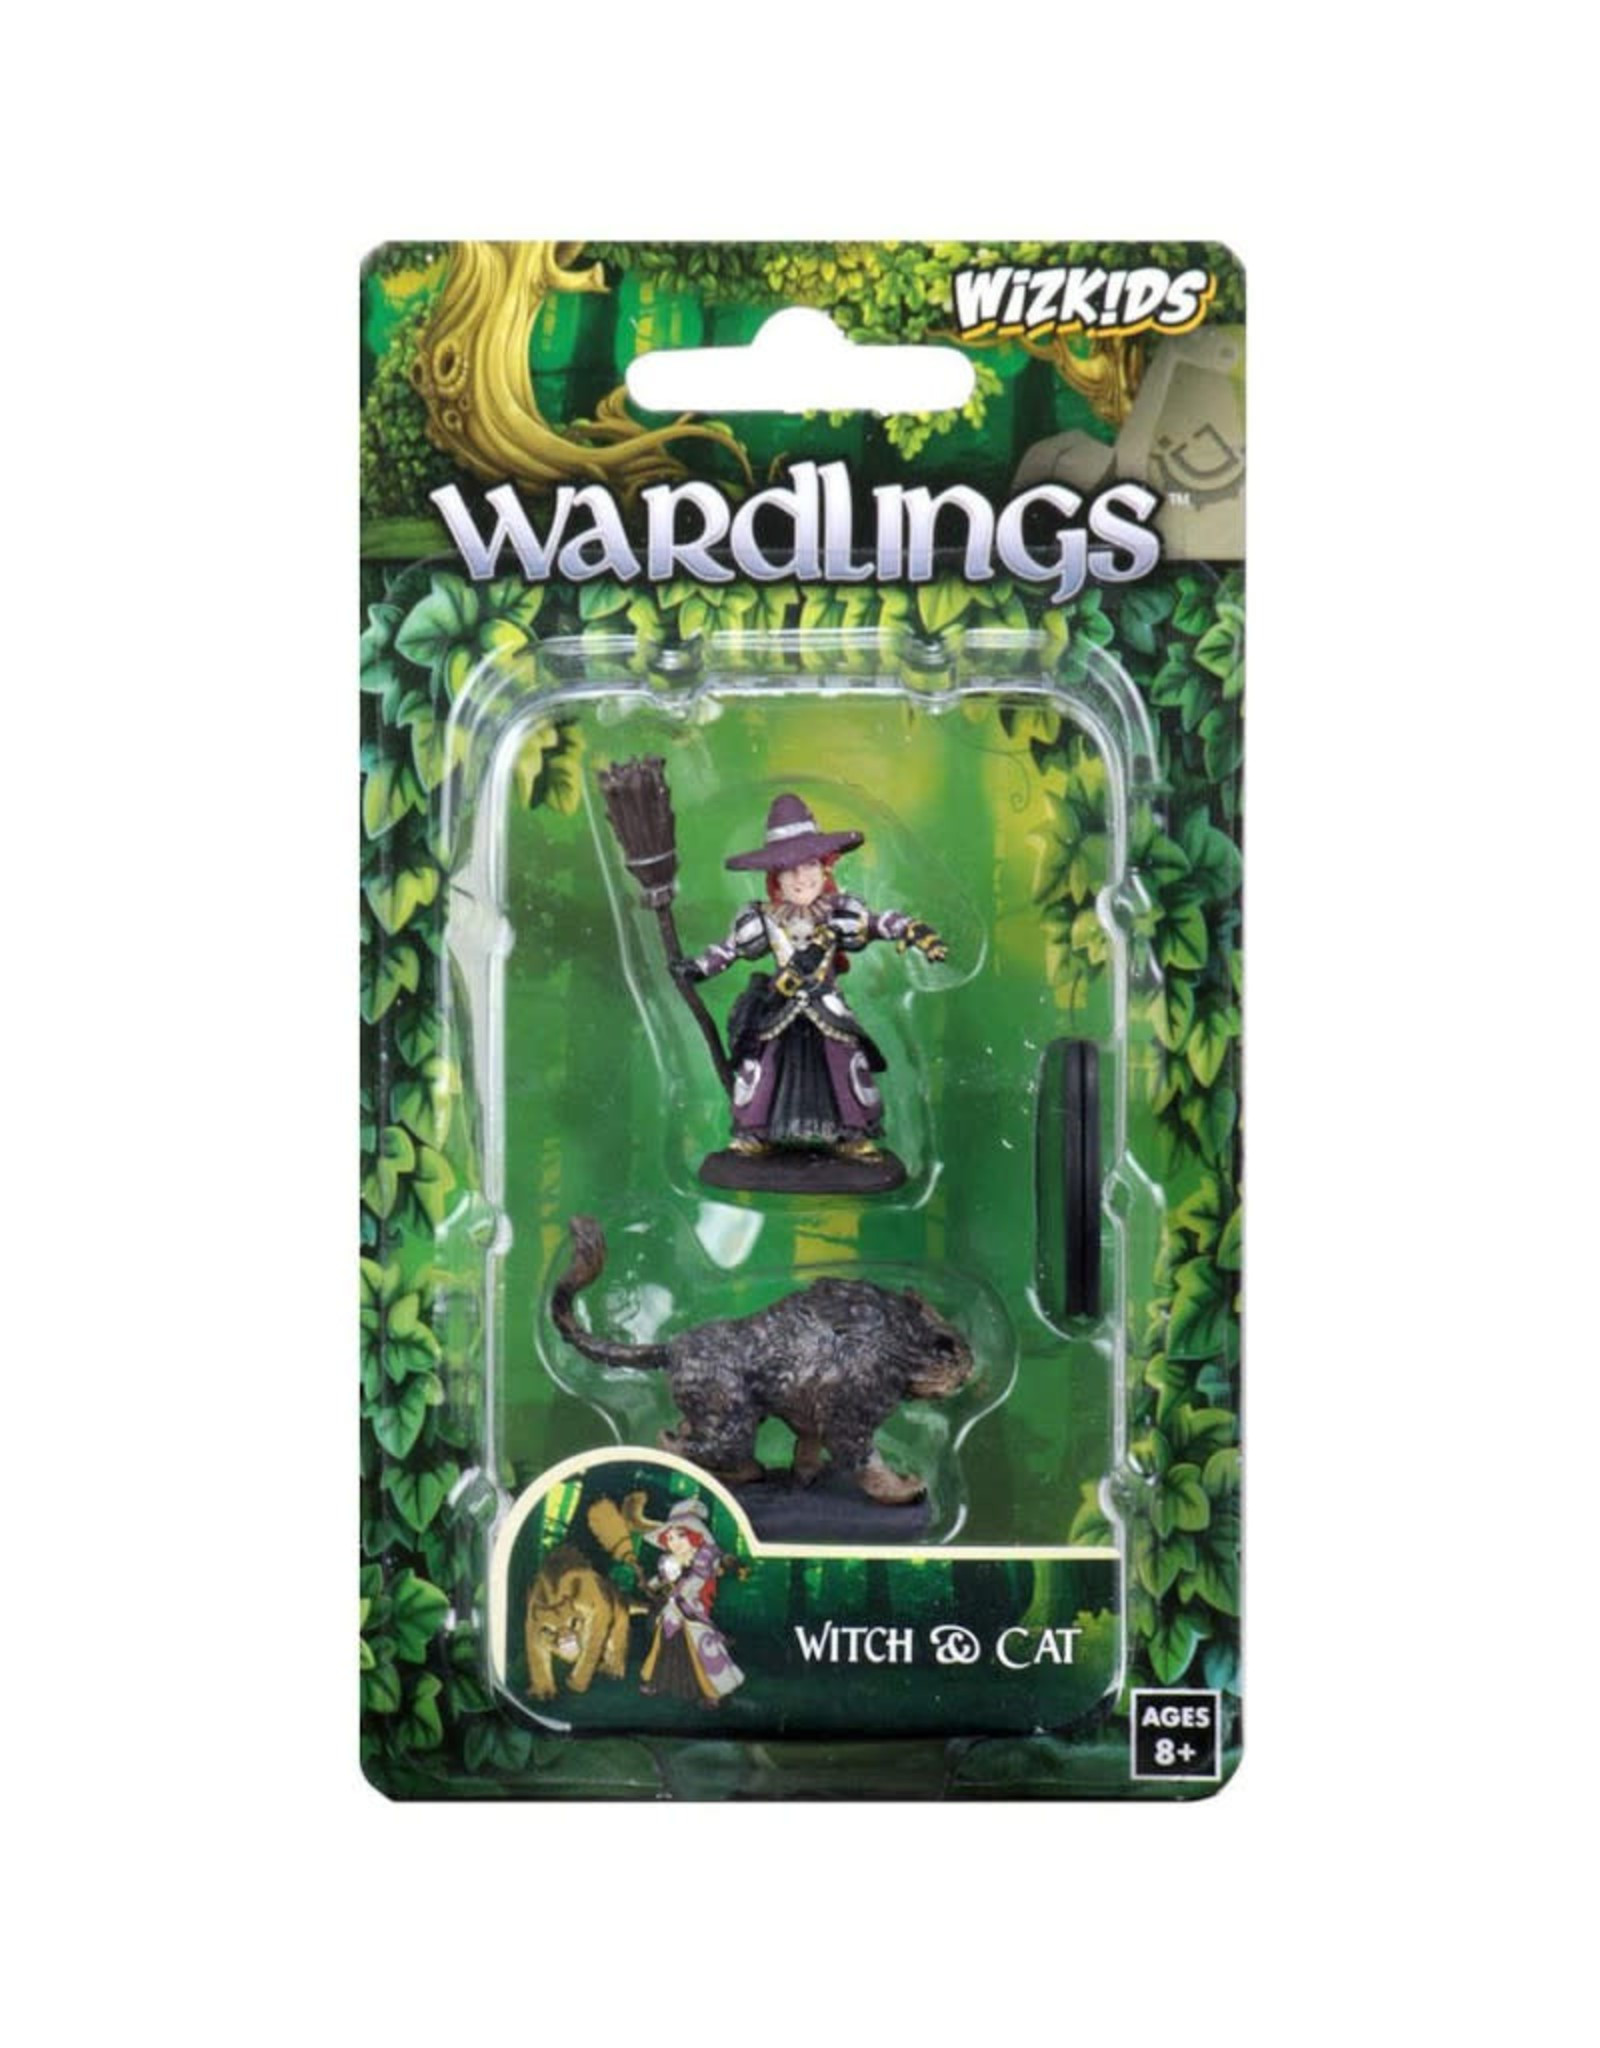 Wizkids Wardlings: Girl Witch and Cat